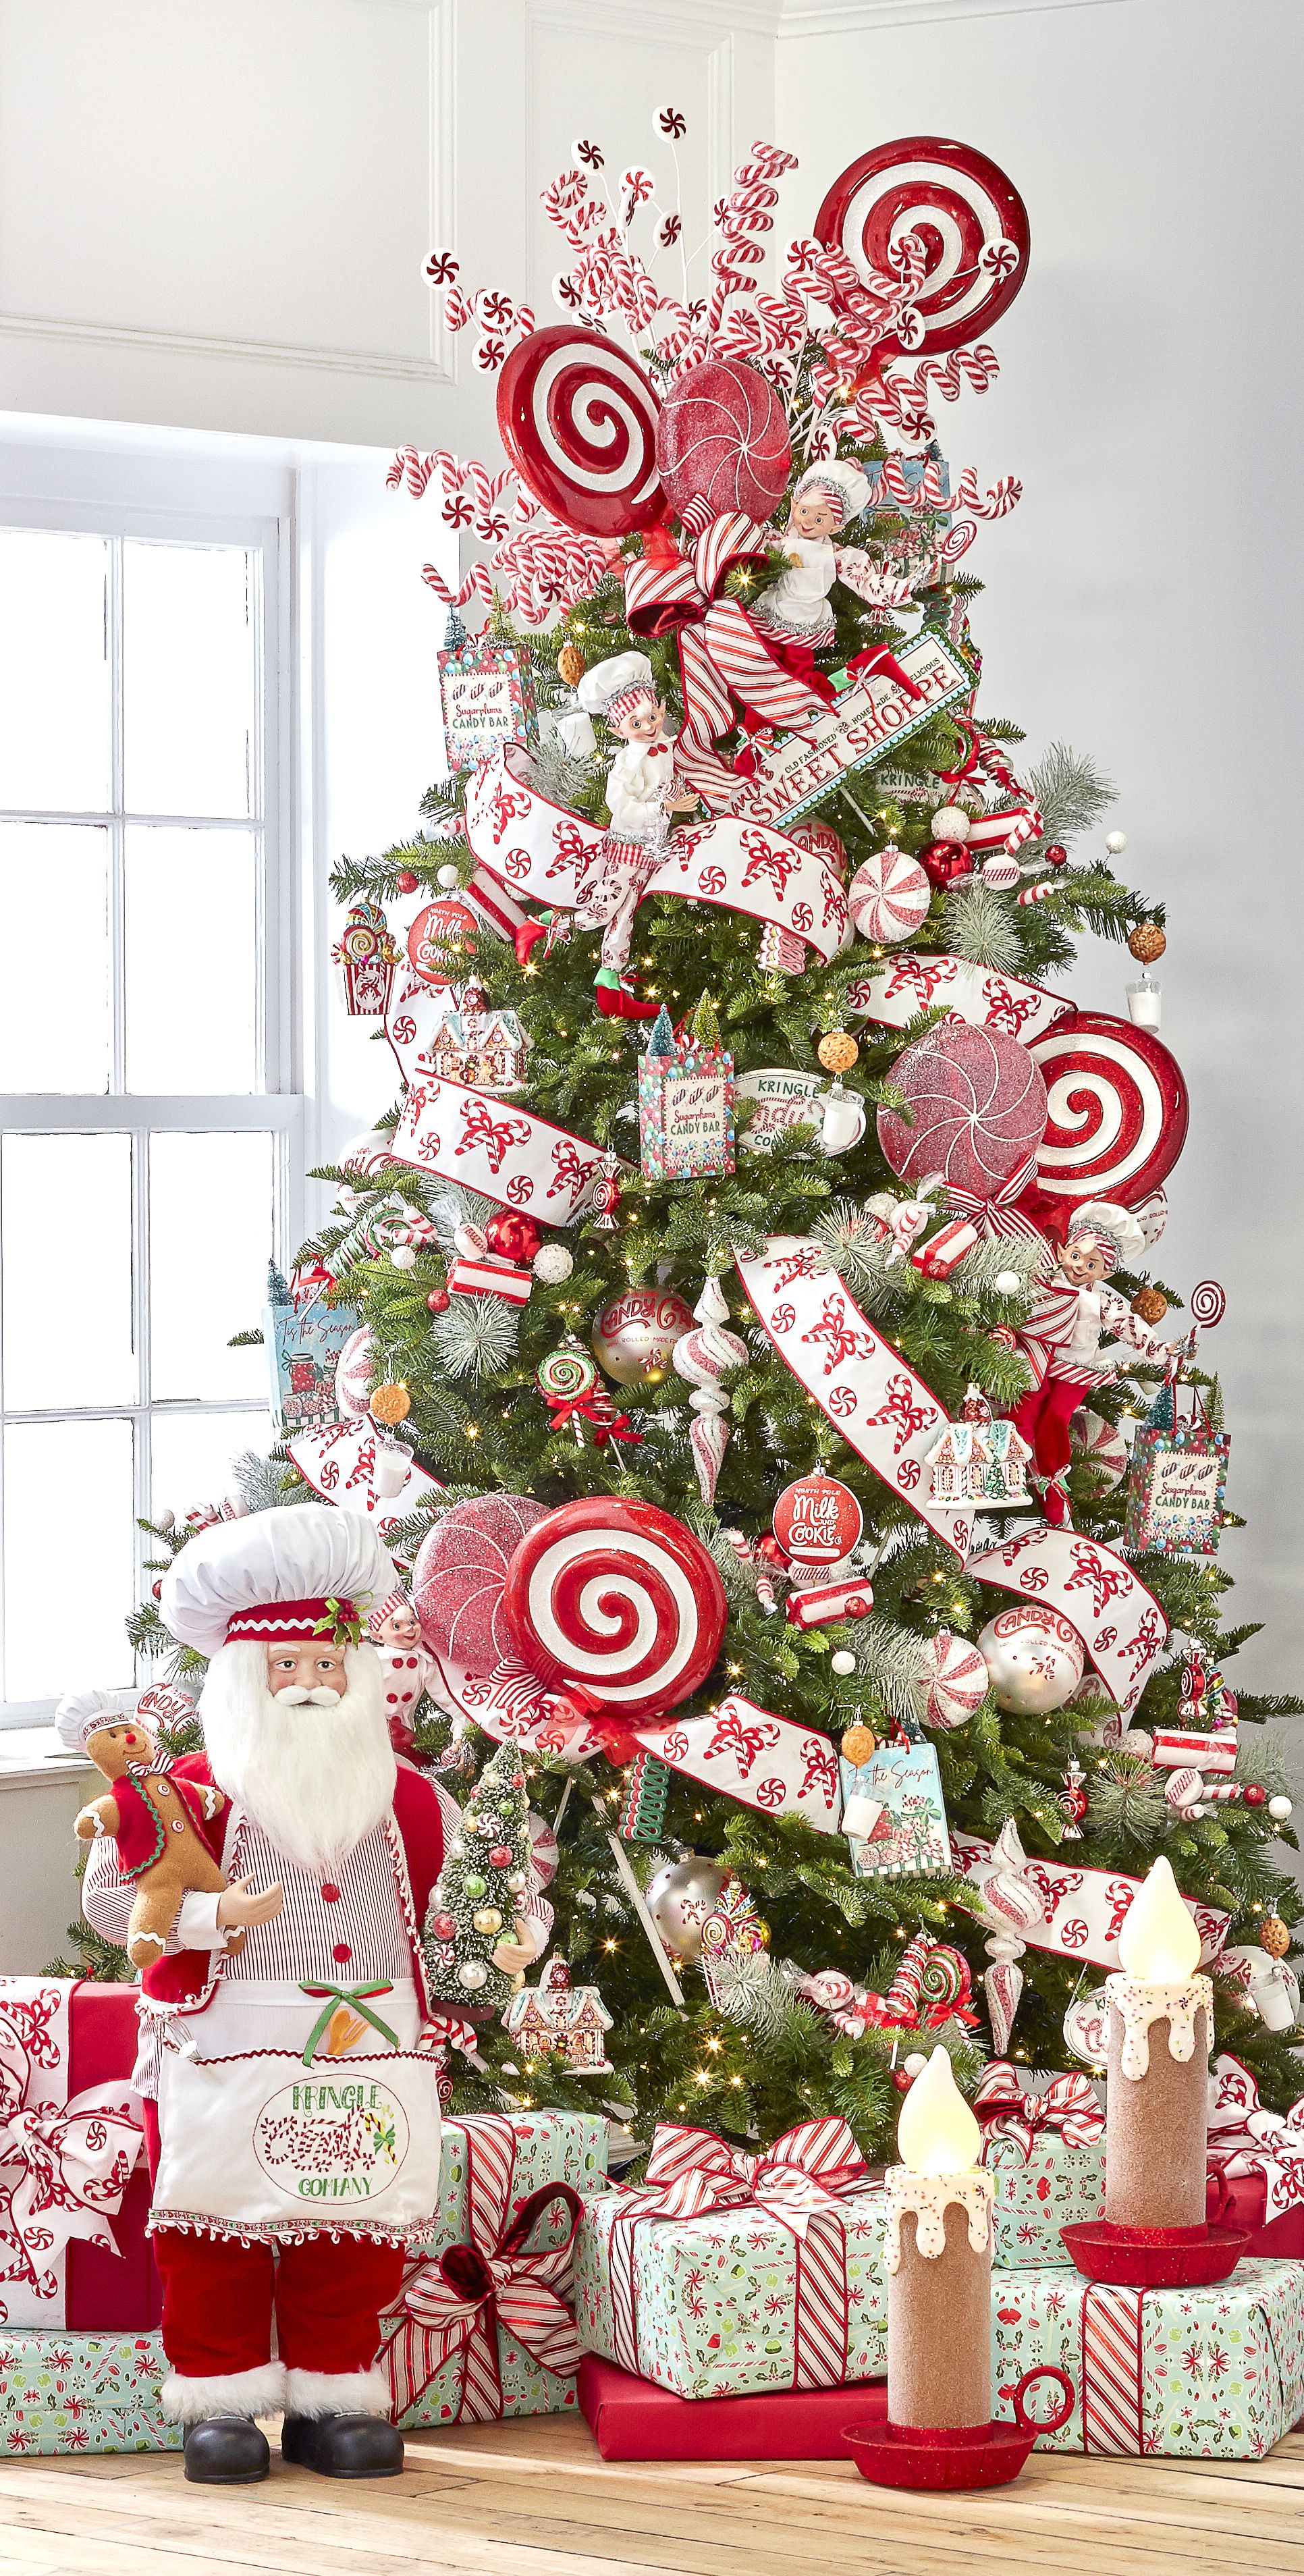 Kringle Candy Co Christmas Tree Decorations Christmas Tree Inspiration Candy Christmas Tree